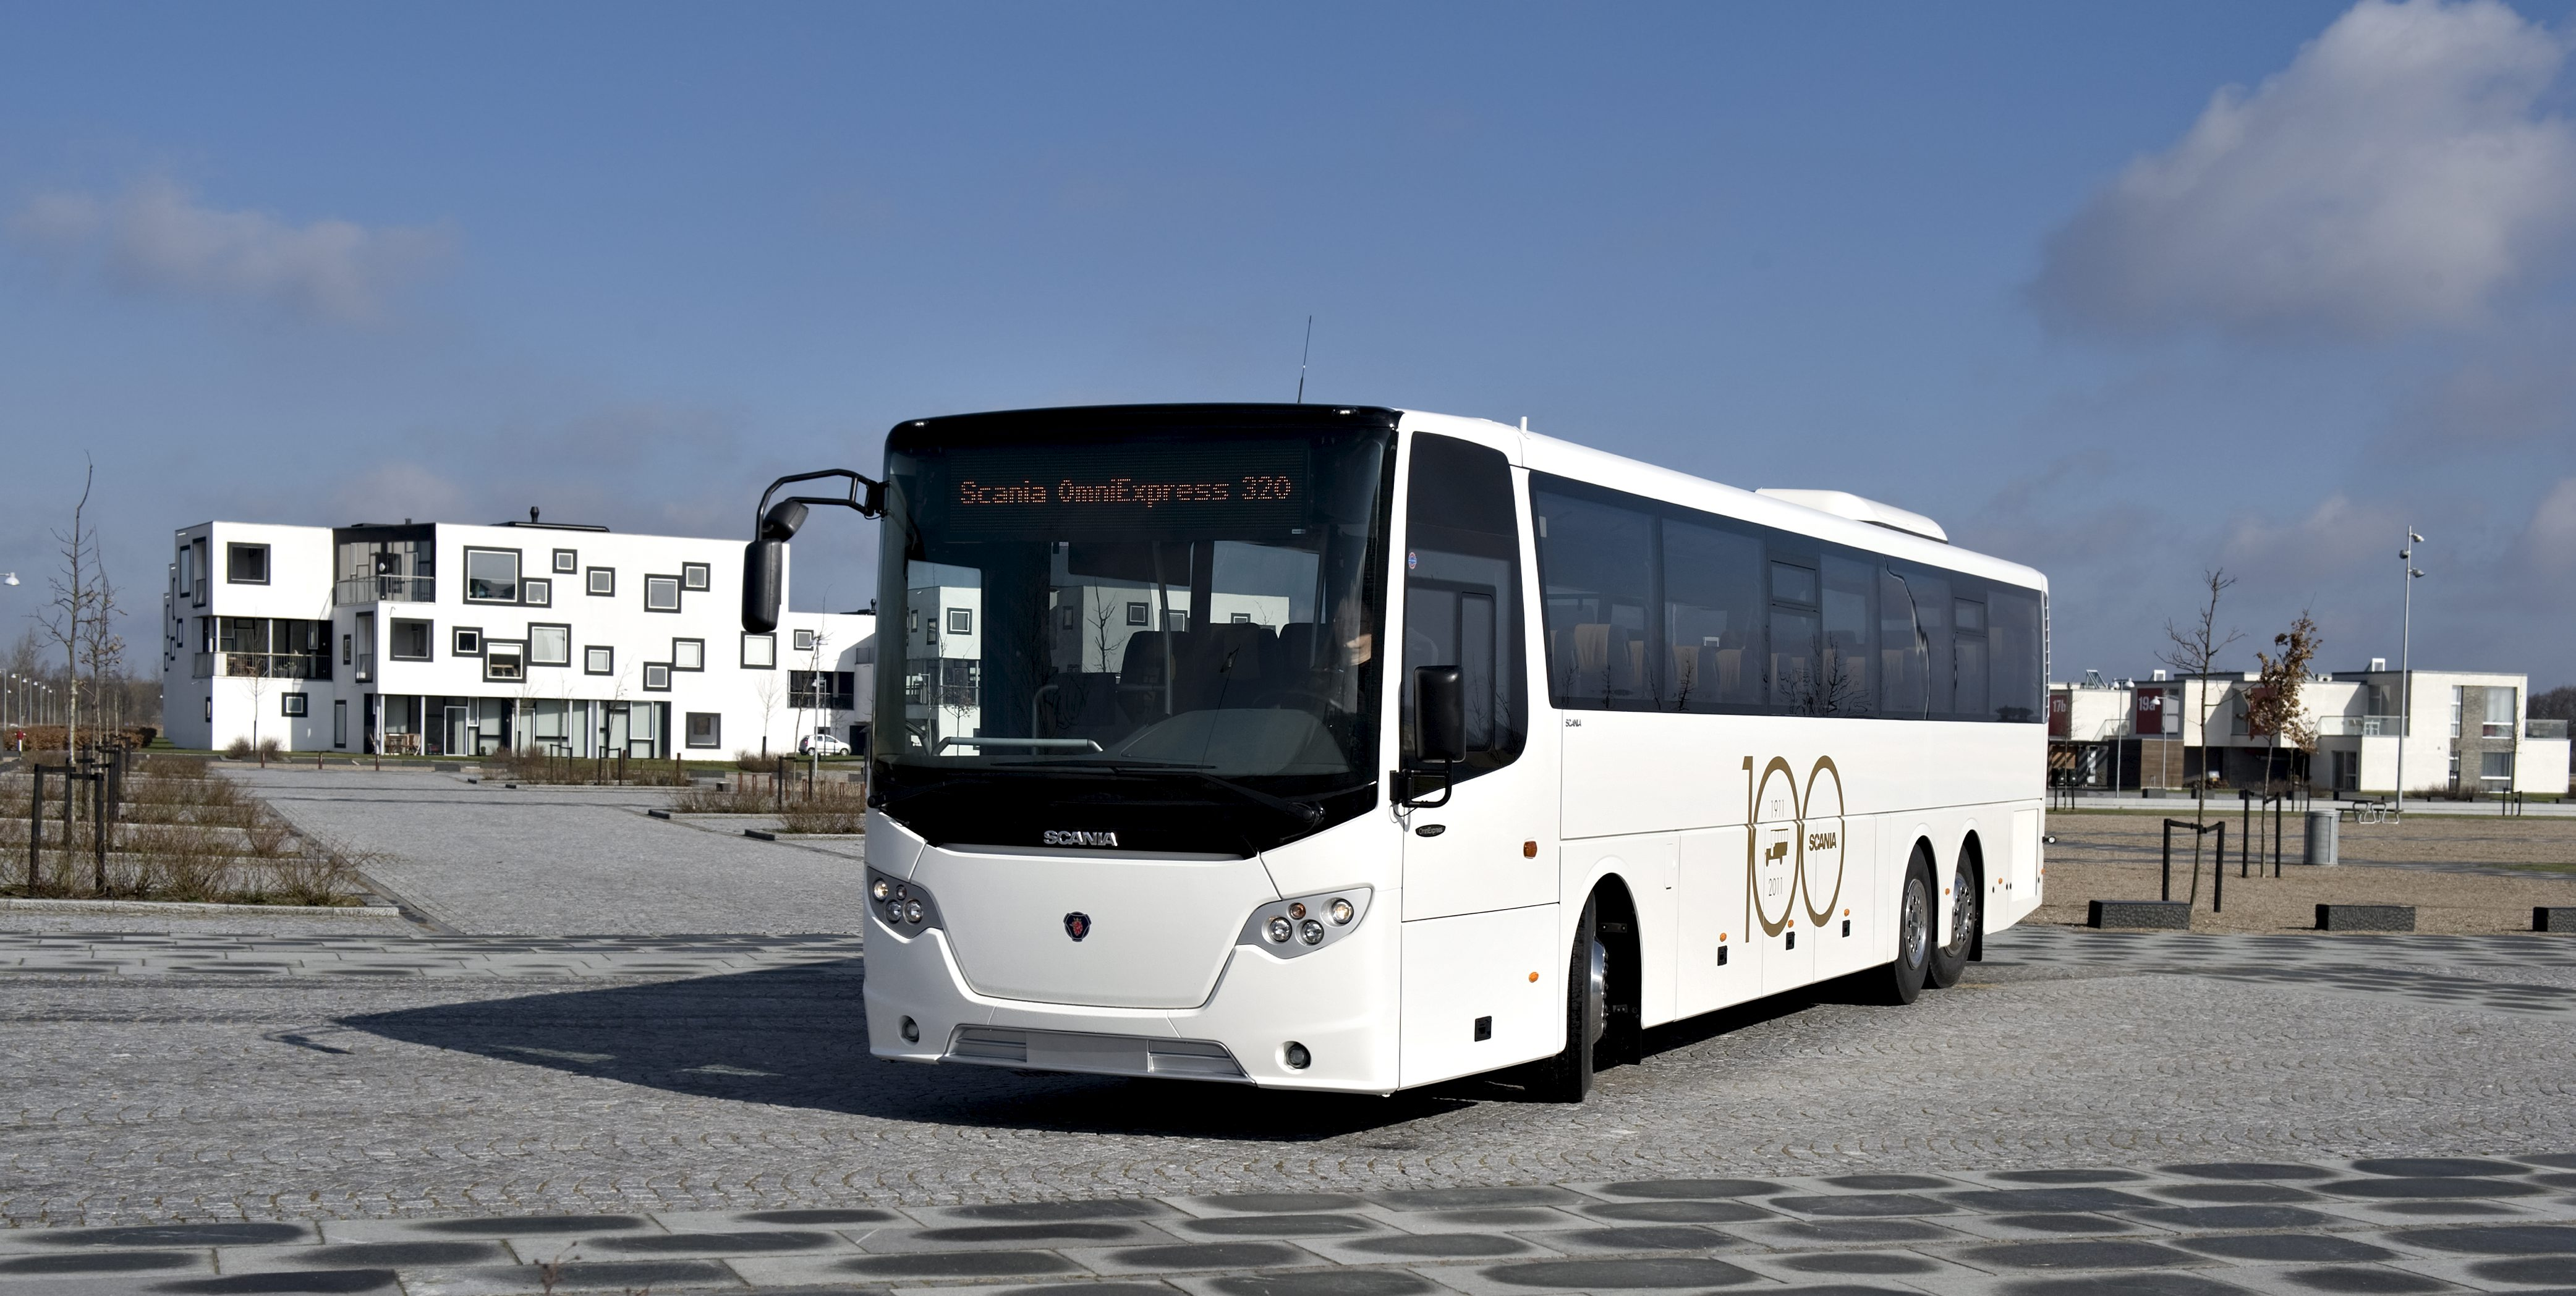 Scania omniexpress photo - 1